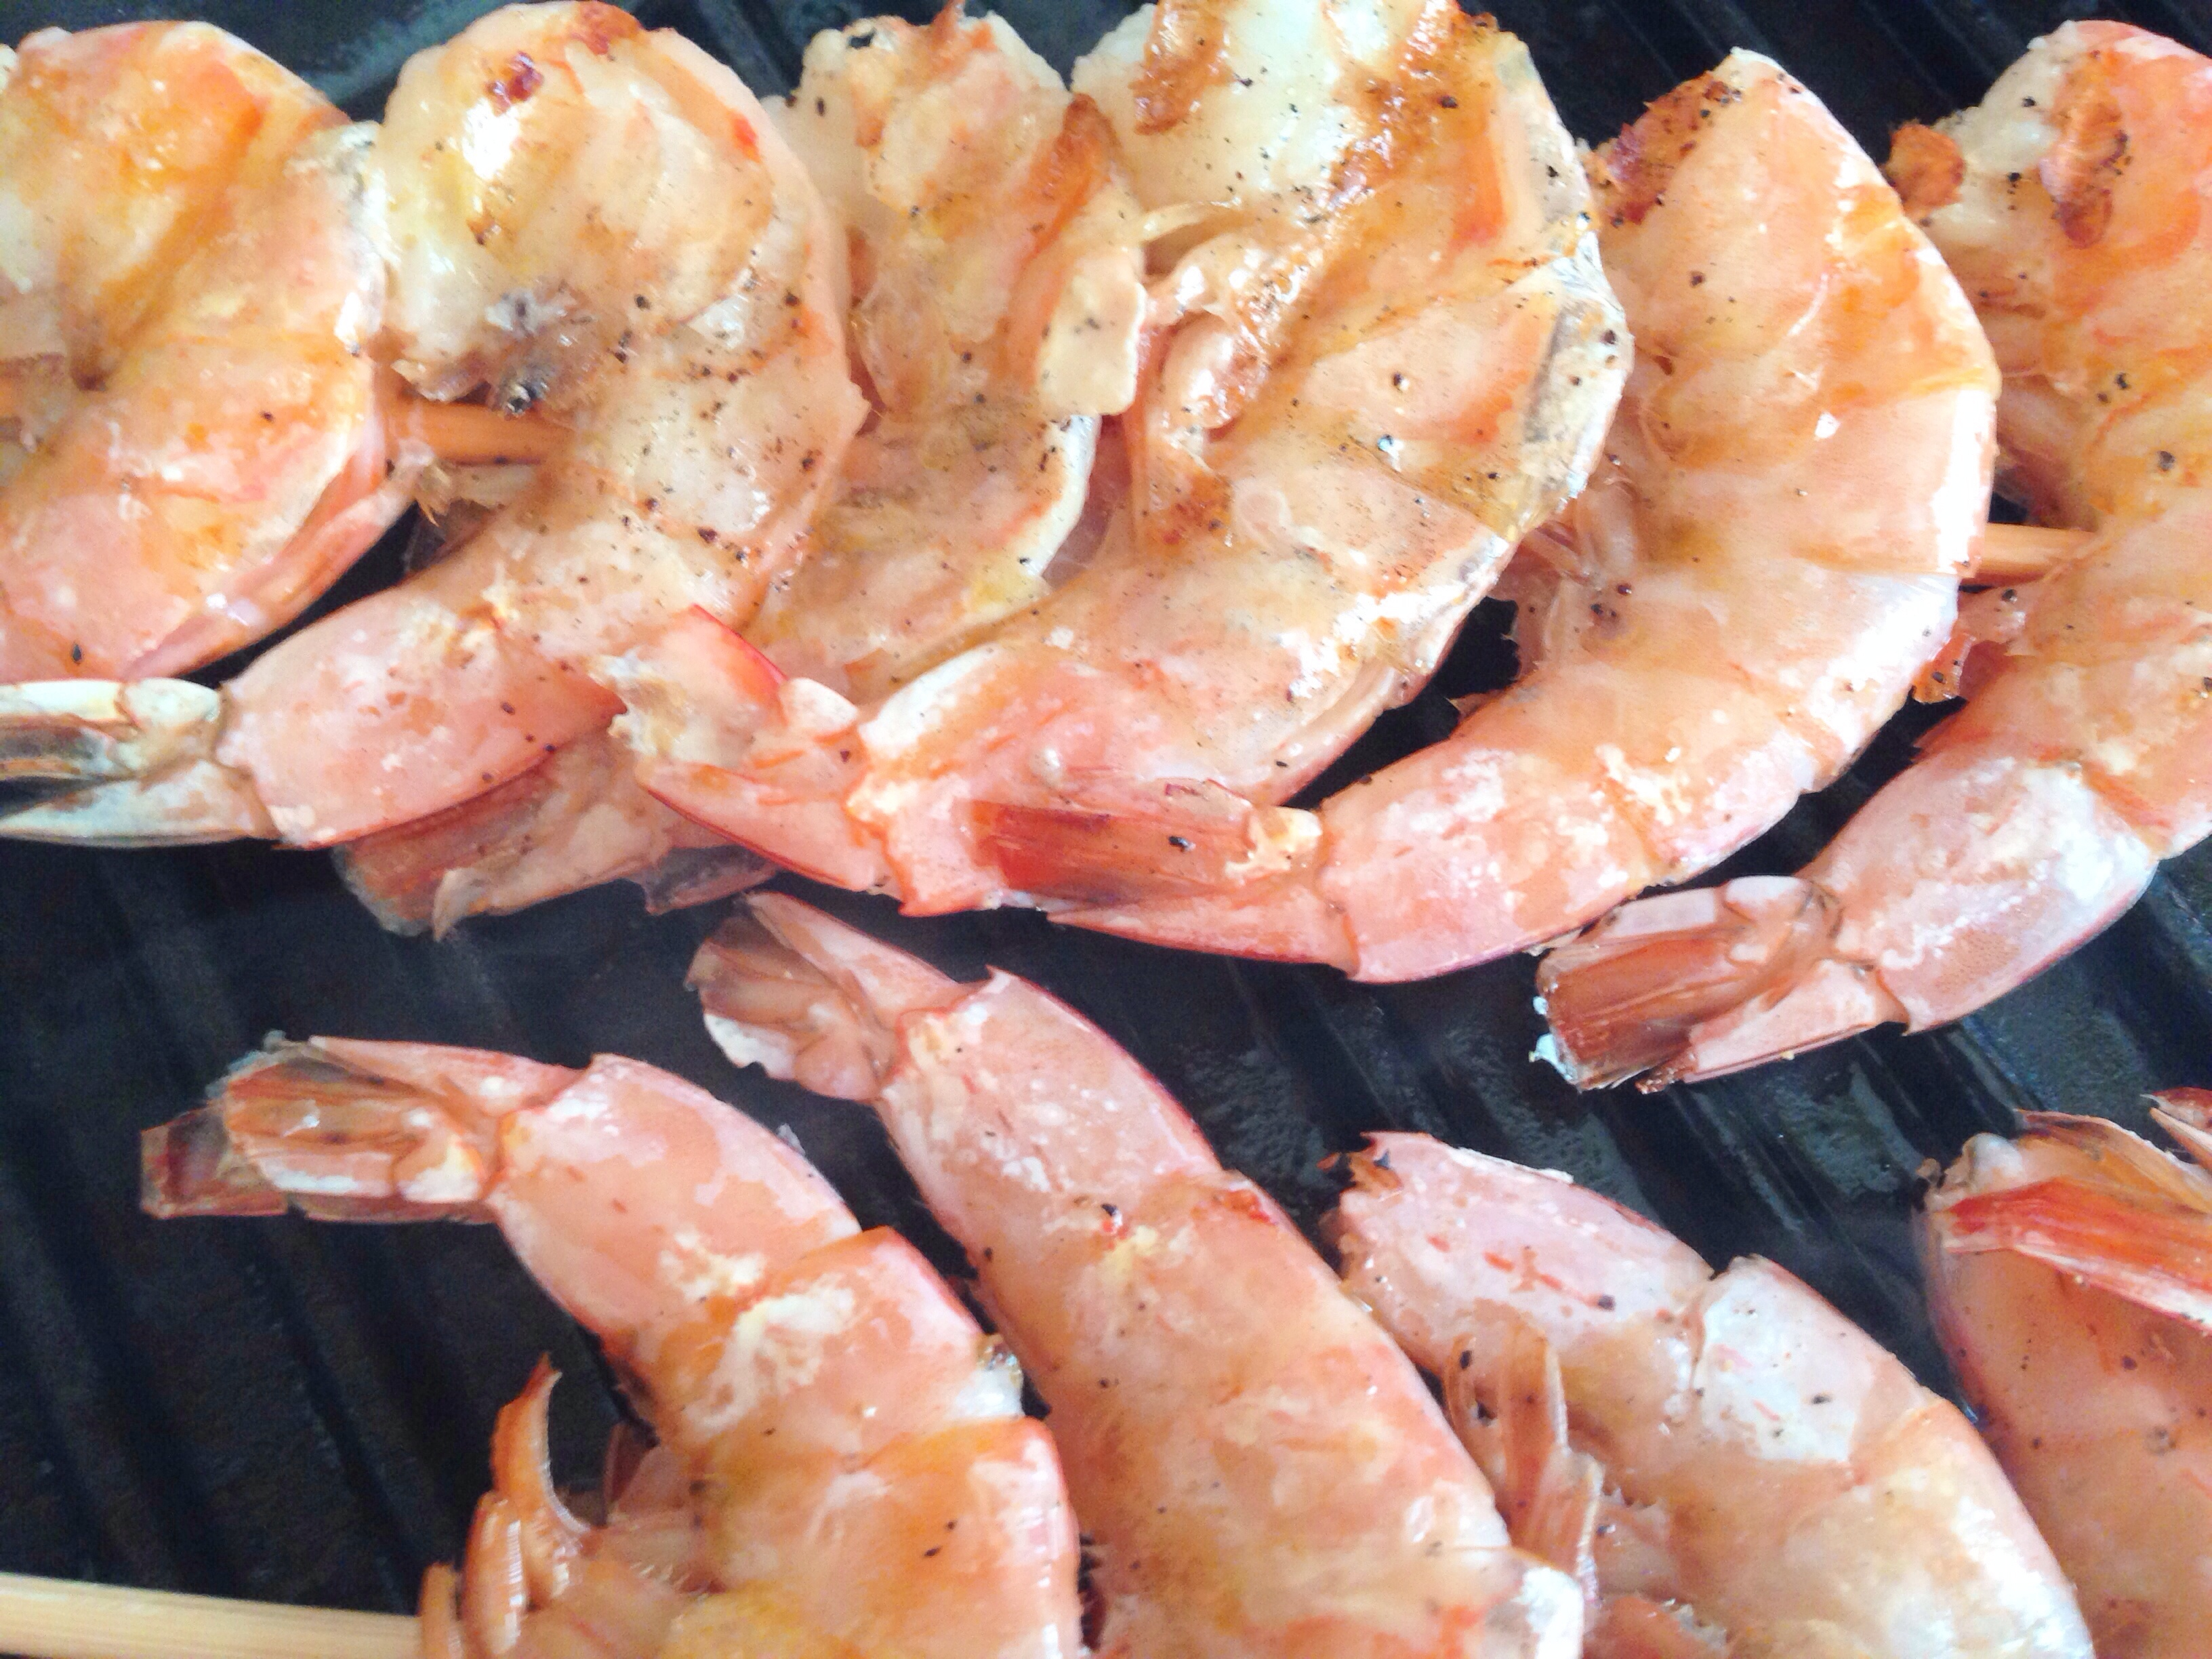 grilled shrimp salad with tarragon-sumac dressing